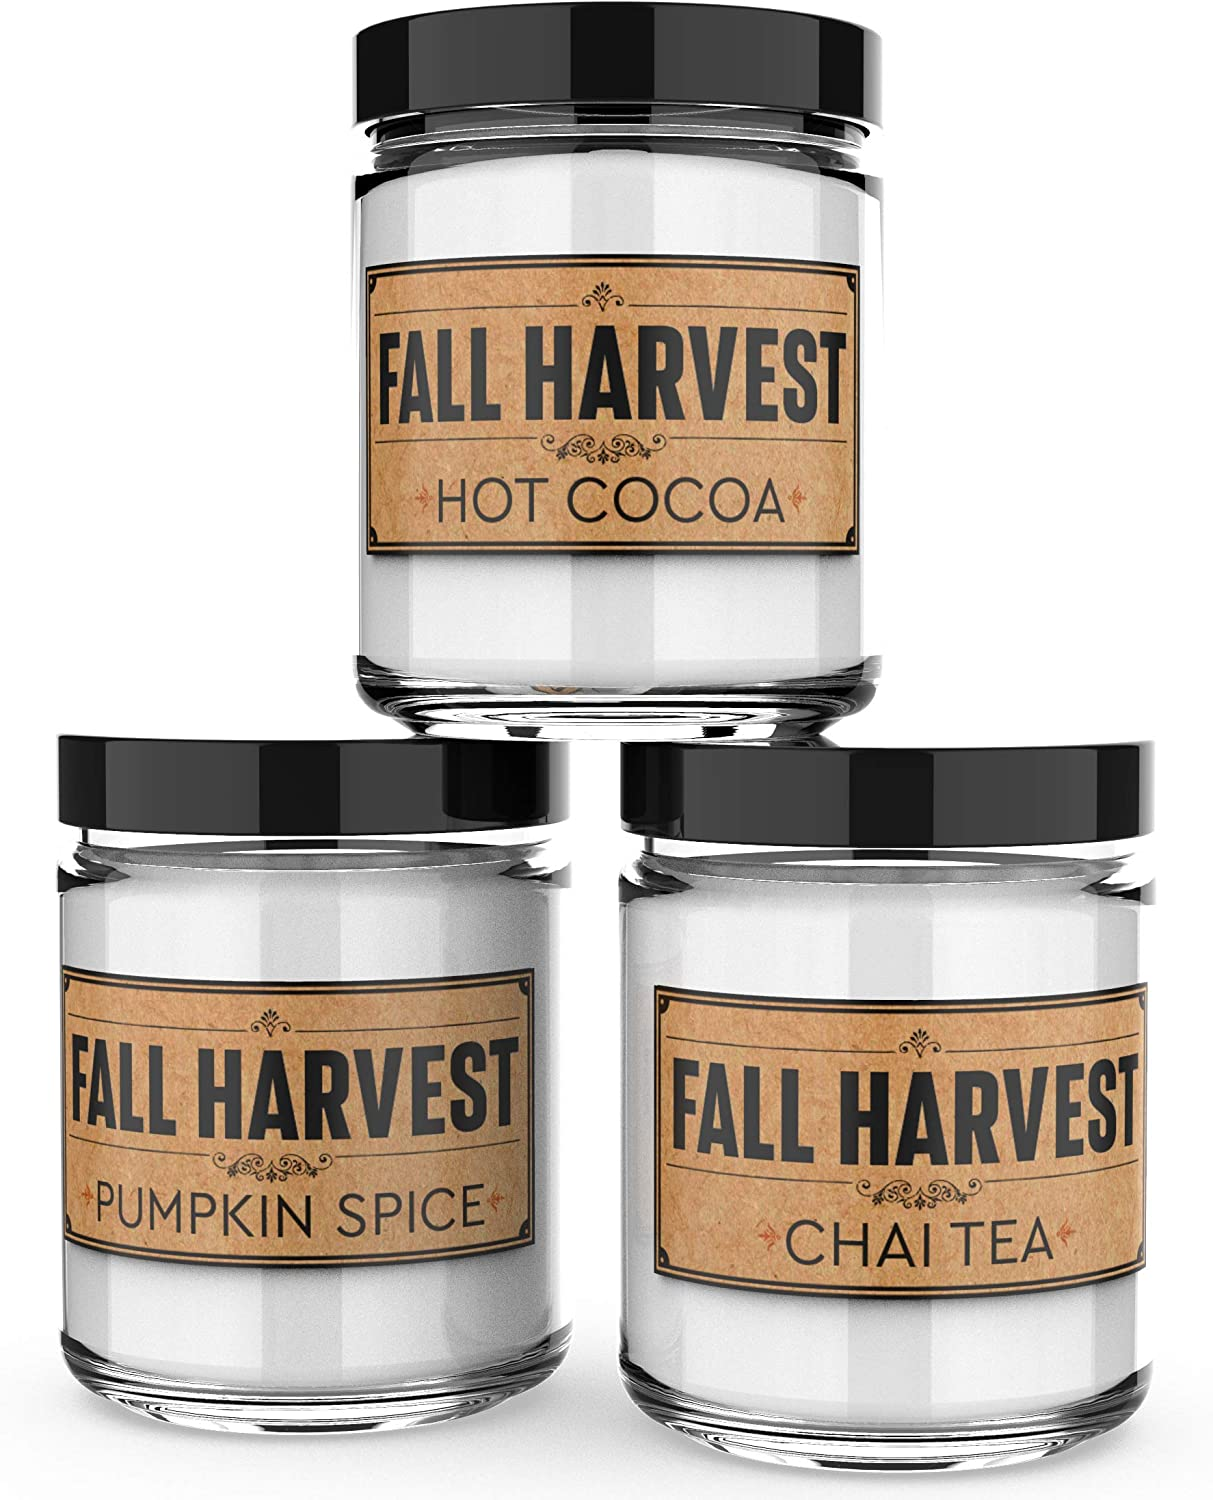 Amazon Com Scented Candles Fall Harvest Set Of 3 Hot Cocoa Pumpkin Spice And Chai Tea 3 X 4 Ounce Soy Candles Each Votive Candle Is Handmade In The Usa